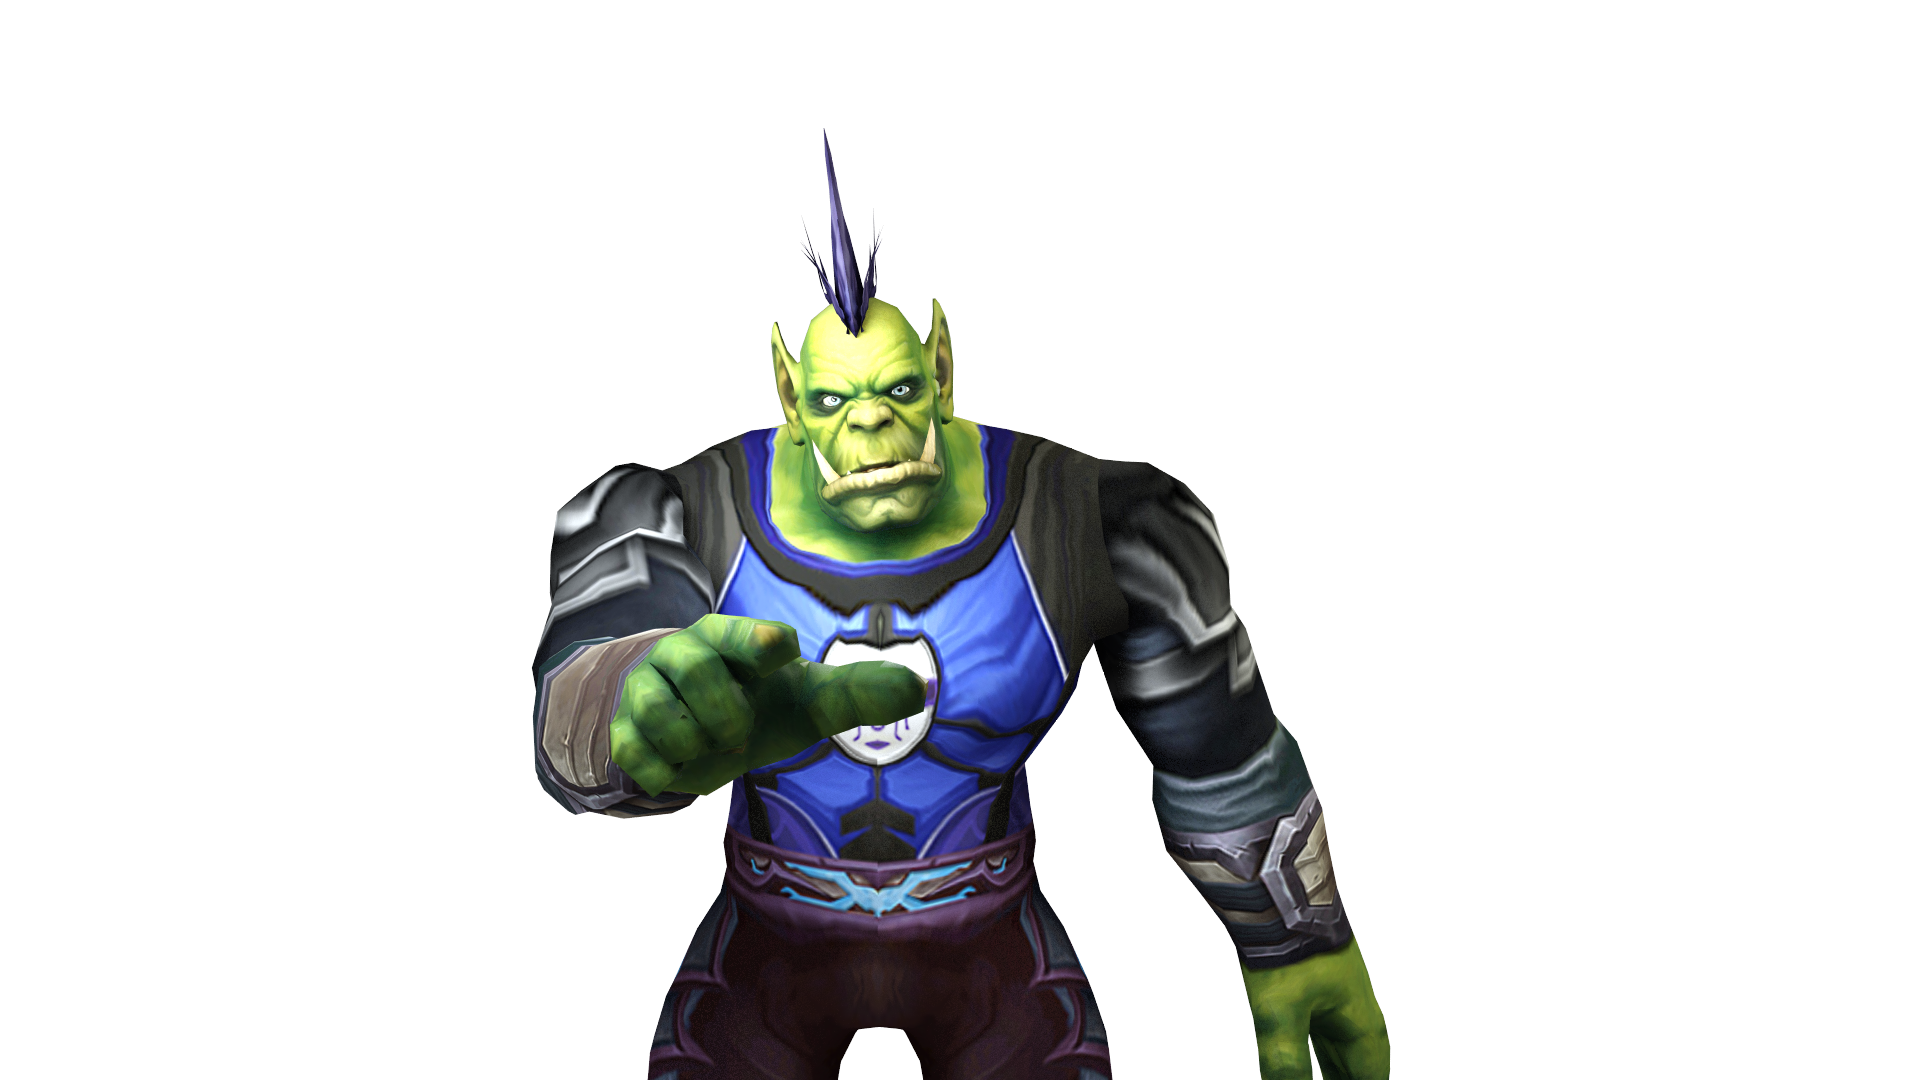 uploads orc orc PNG30 24